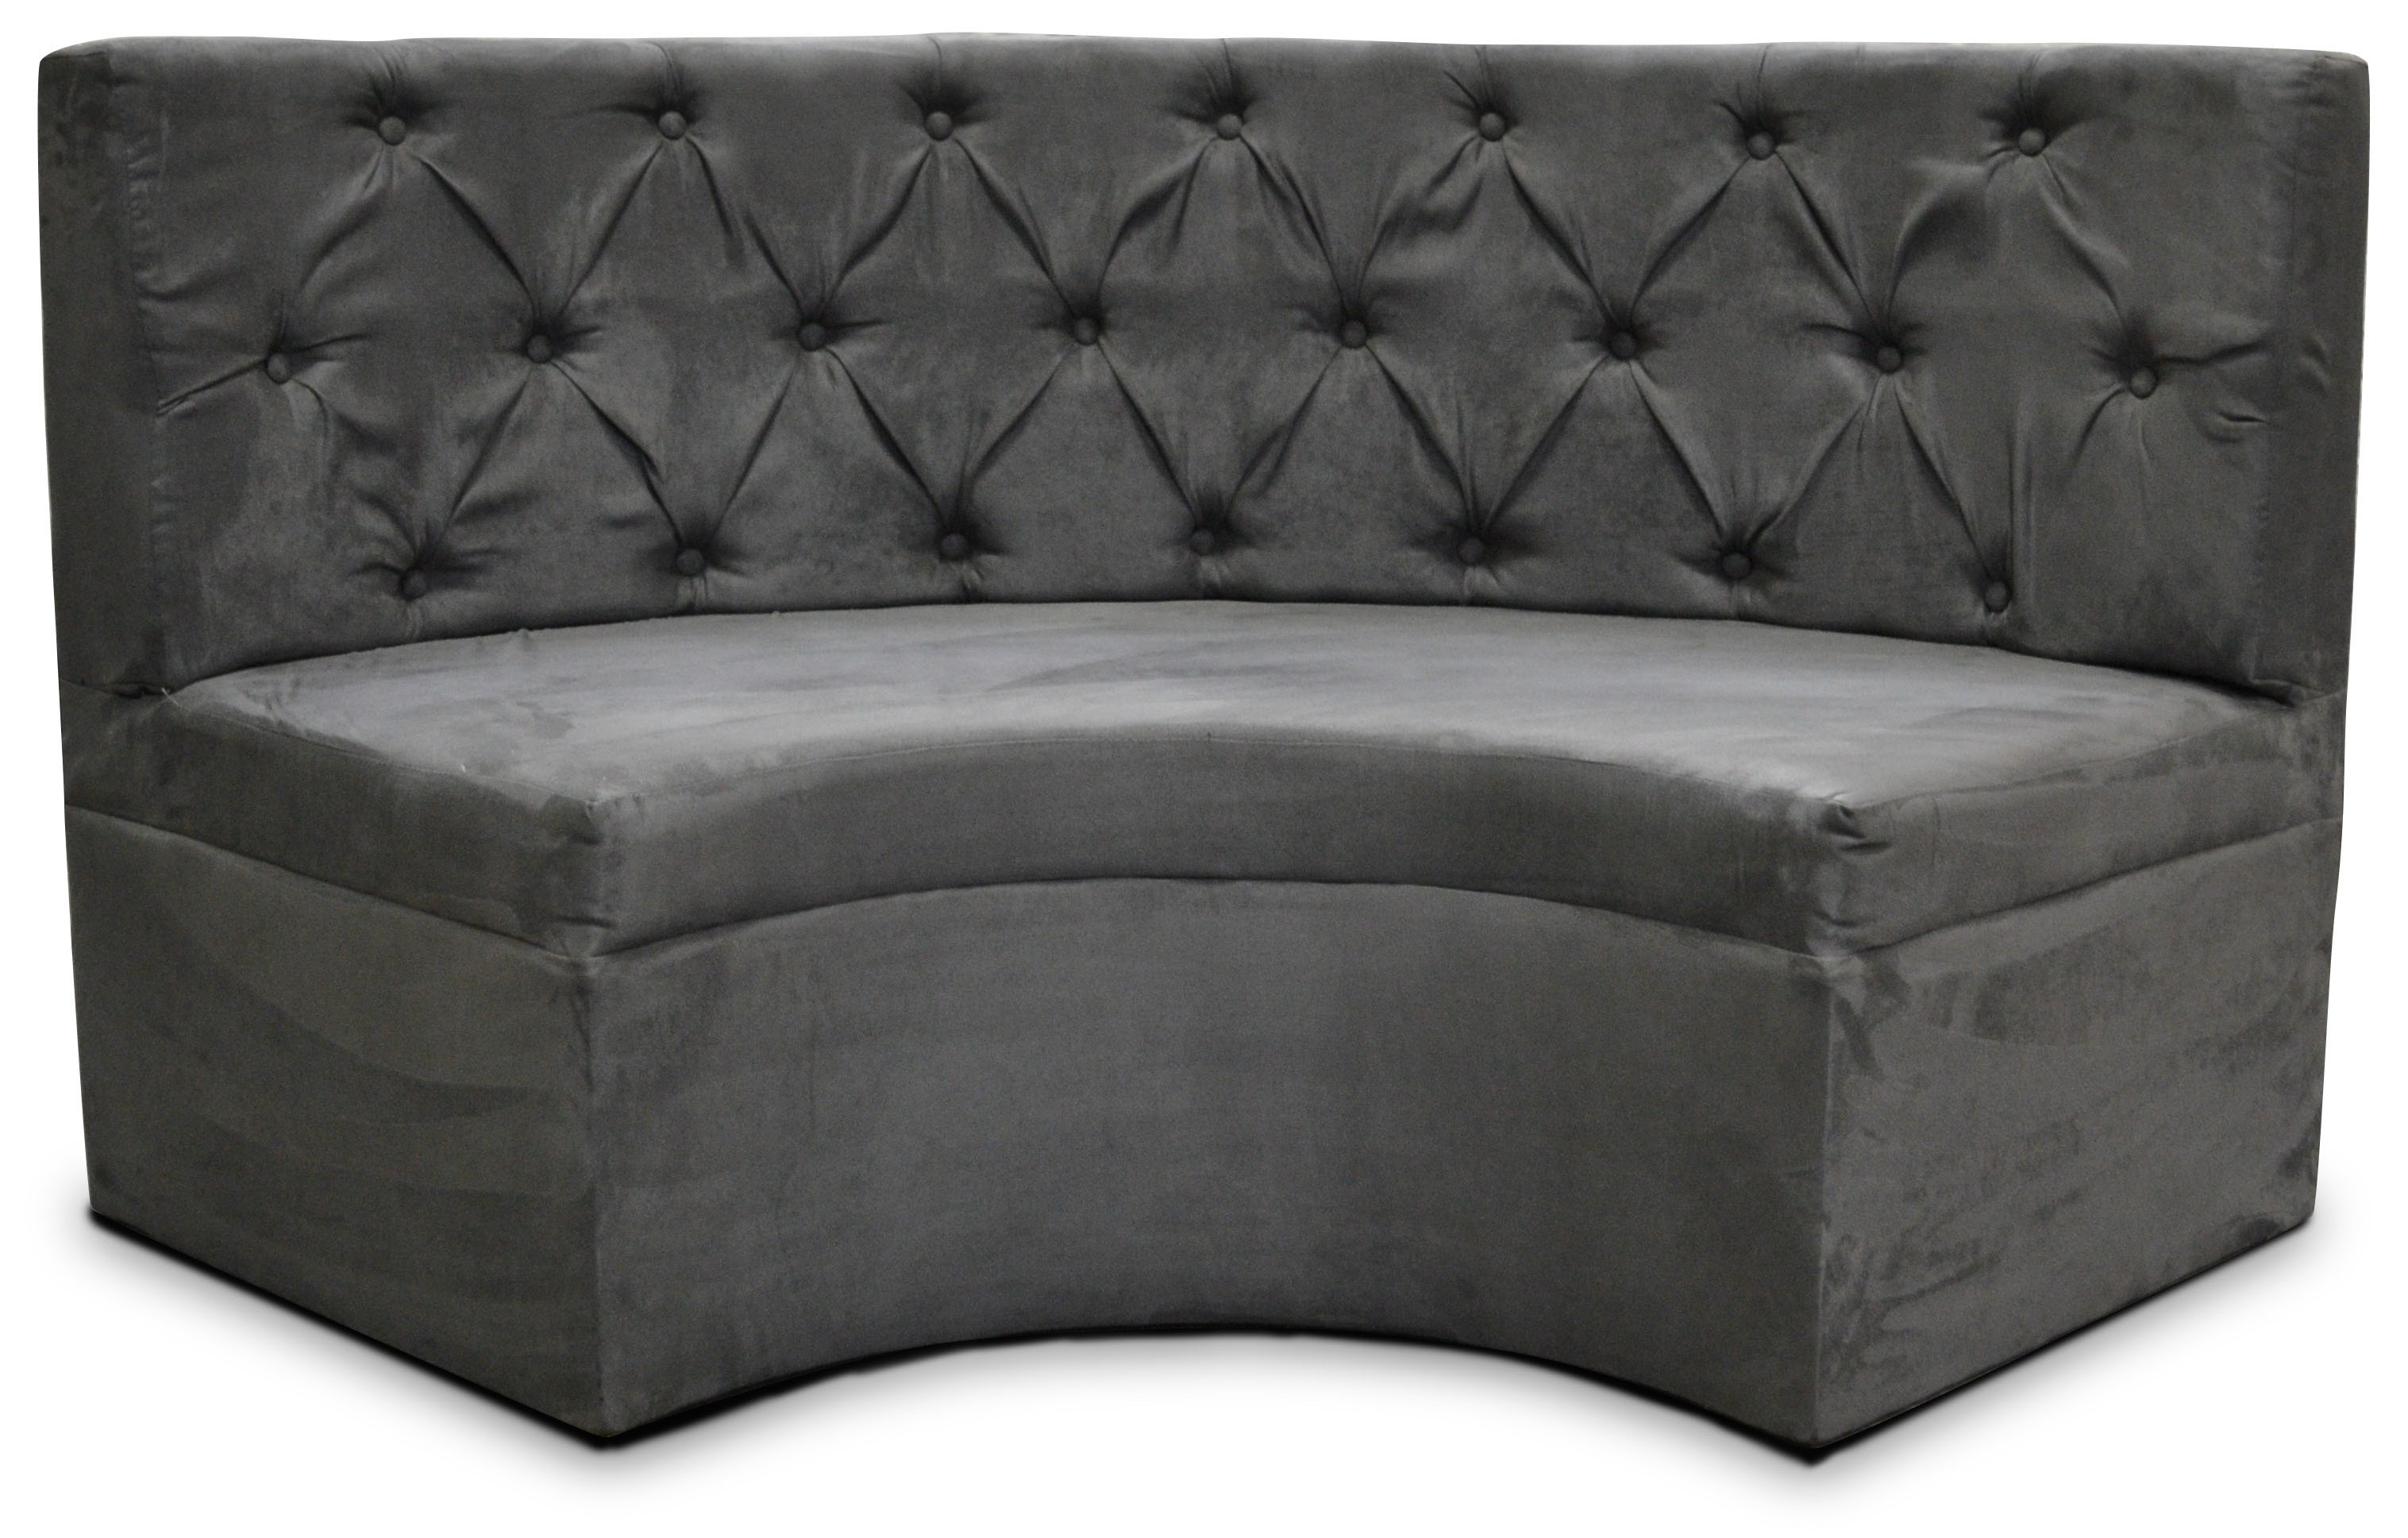 Great black leather sectional for elegant living room design with black leather sectional sofa